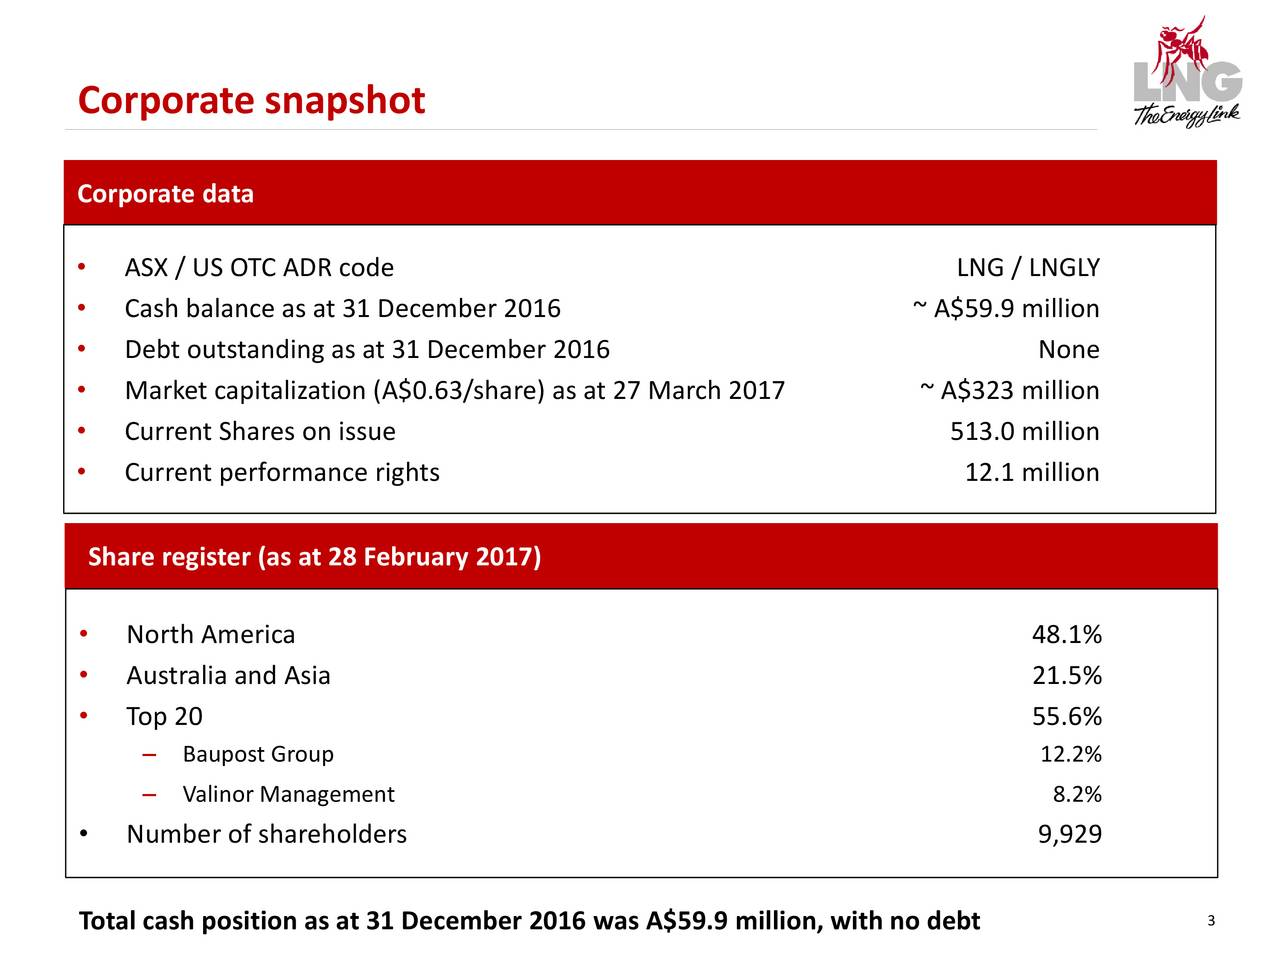 Corporate data ASX / US OTC ADR code LNG / LNGLY Cash balance as at 31 December 2016 ~ A$59.9 million Debt outstanding as at 31 December 2016 None Market capitalization (A$0.63/share) as at 27 March 2017 ~ A$323 million Current Shares on issue 513.0 million Current performance rights 12.1 million Share register (as at 28 February 2017) North America 48.1% Australia and Asia 21.5% Top 20 55.6% Baupost Group 12.2% ValinorManagement 8.2% Number of shareholders 9,929 Total cash position as at 31 December 2016 was A$59.9 million, with no debt 3